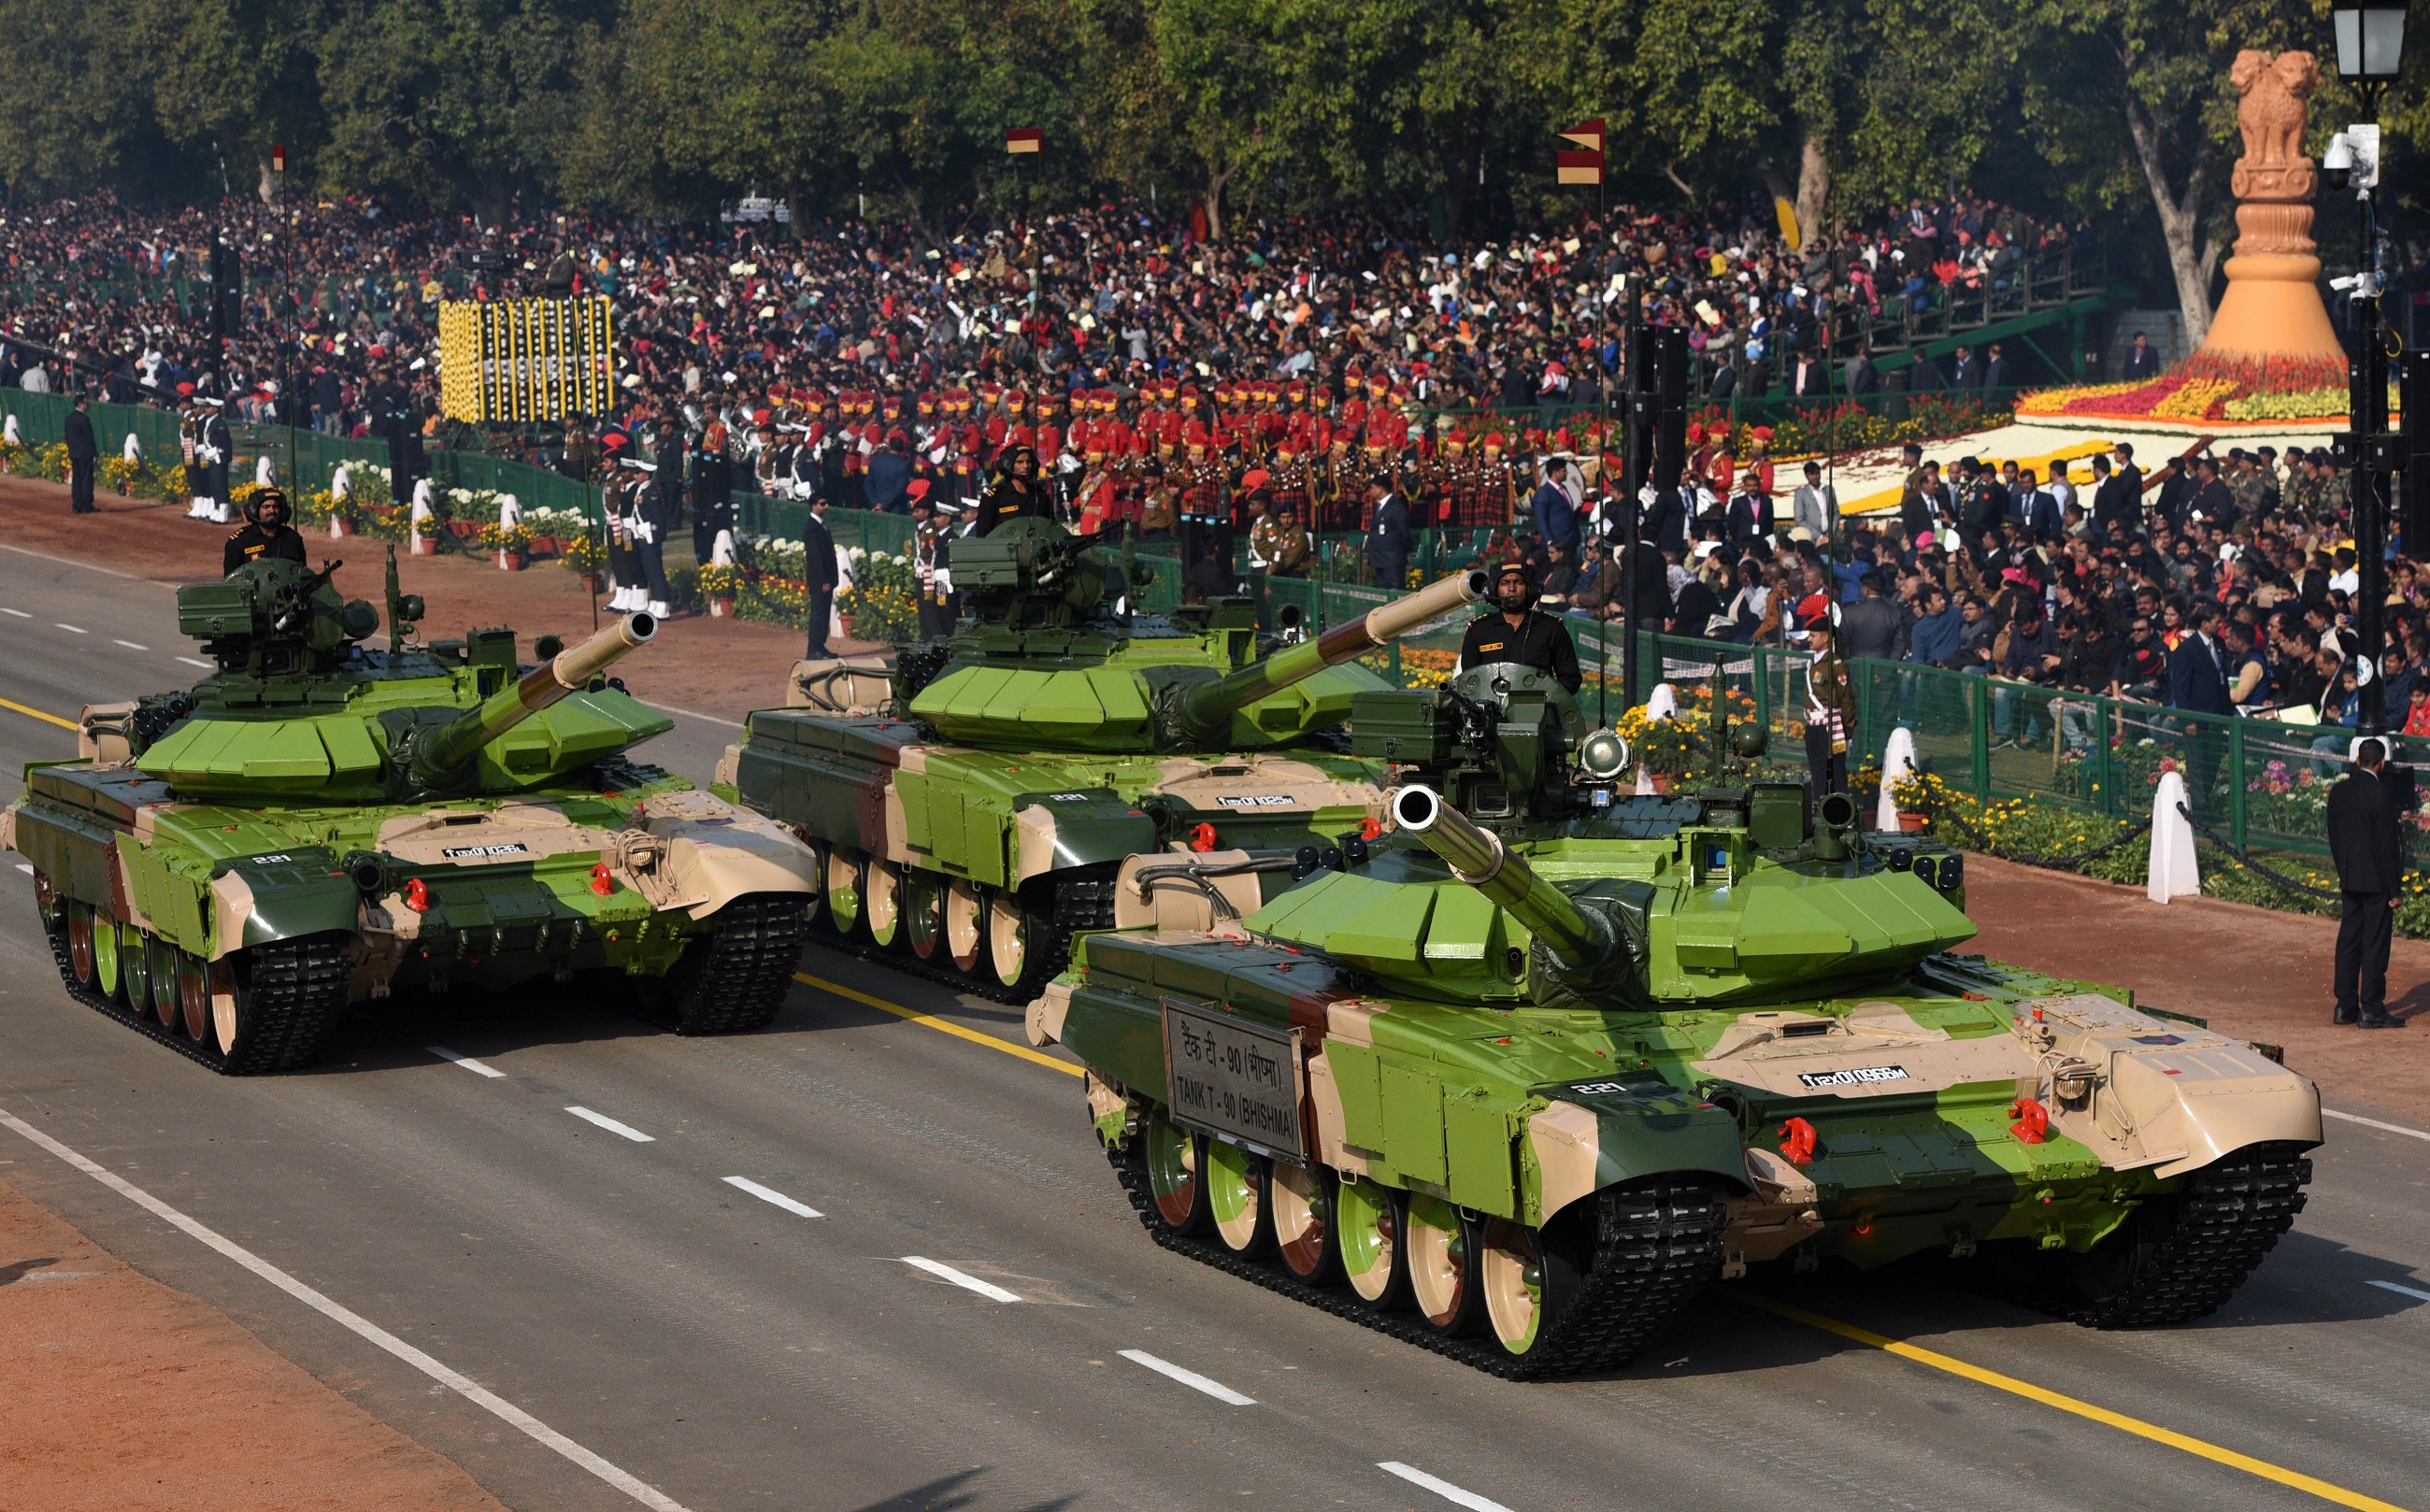 T-90 tanks pass through the saluting base during the 70th Republic Day Parade at Rajpath, on January 26, 2019 in New Delhi, India. On Indias 70th Republic Day, the annual parade showcased the country's rich cultural heritage and traditions.